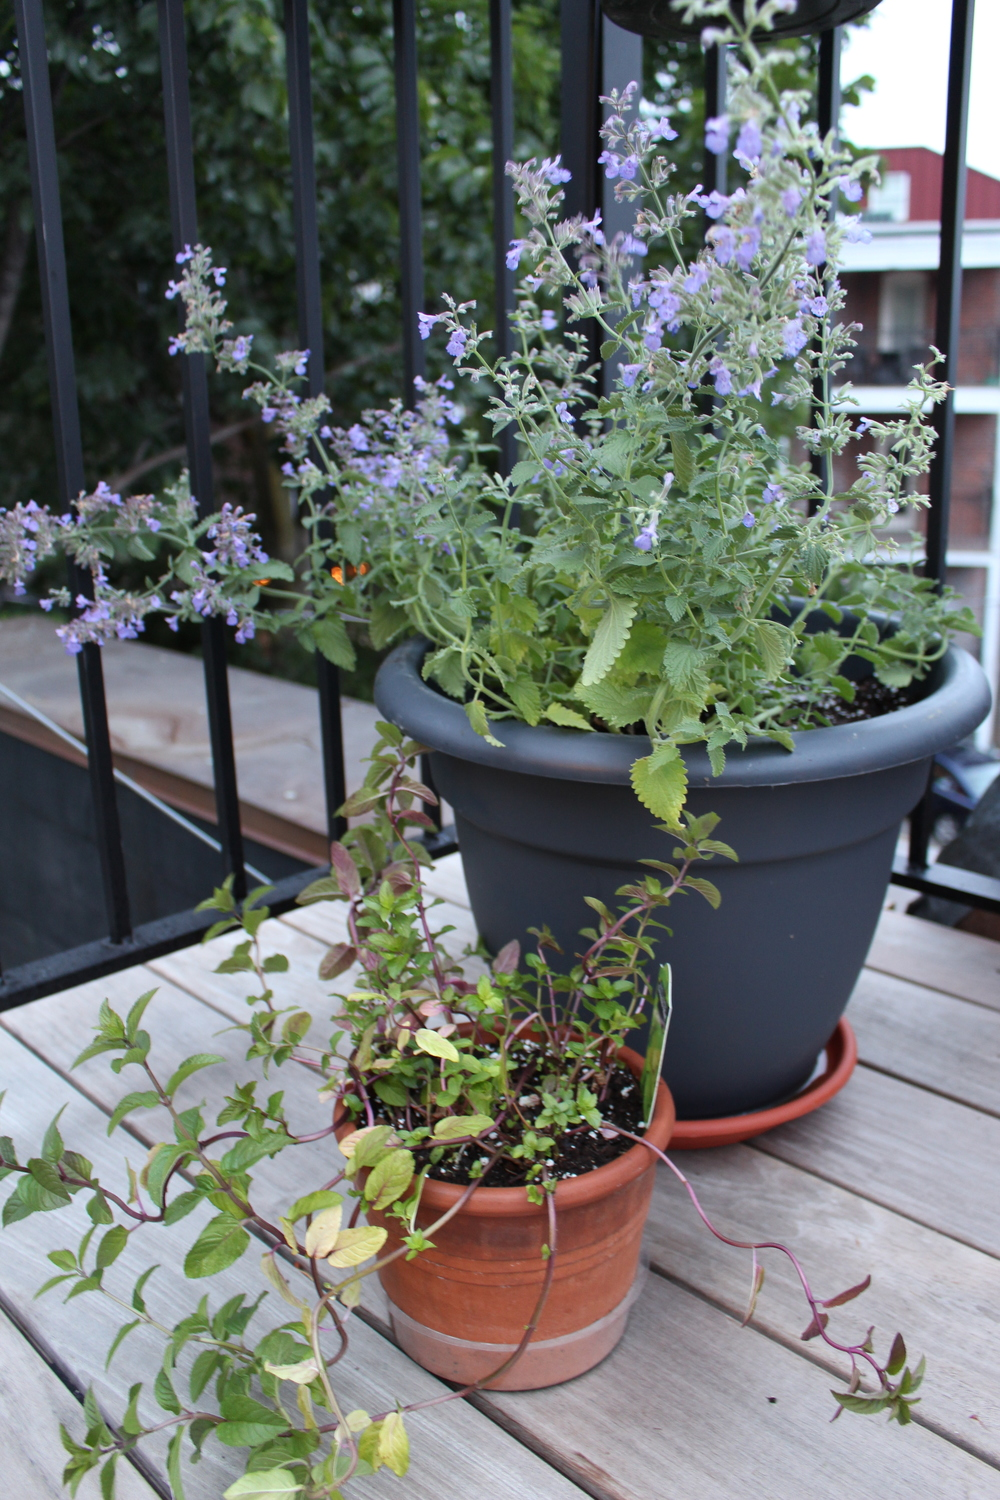 Cat mint in the large pot; Chocolate mint in the small. Mint should be kept to containers - it'll overtake large beds and strangle its neighboring plants.